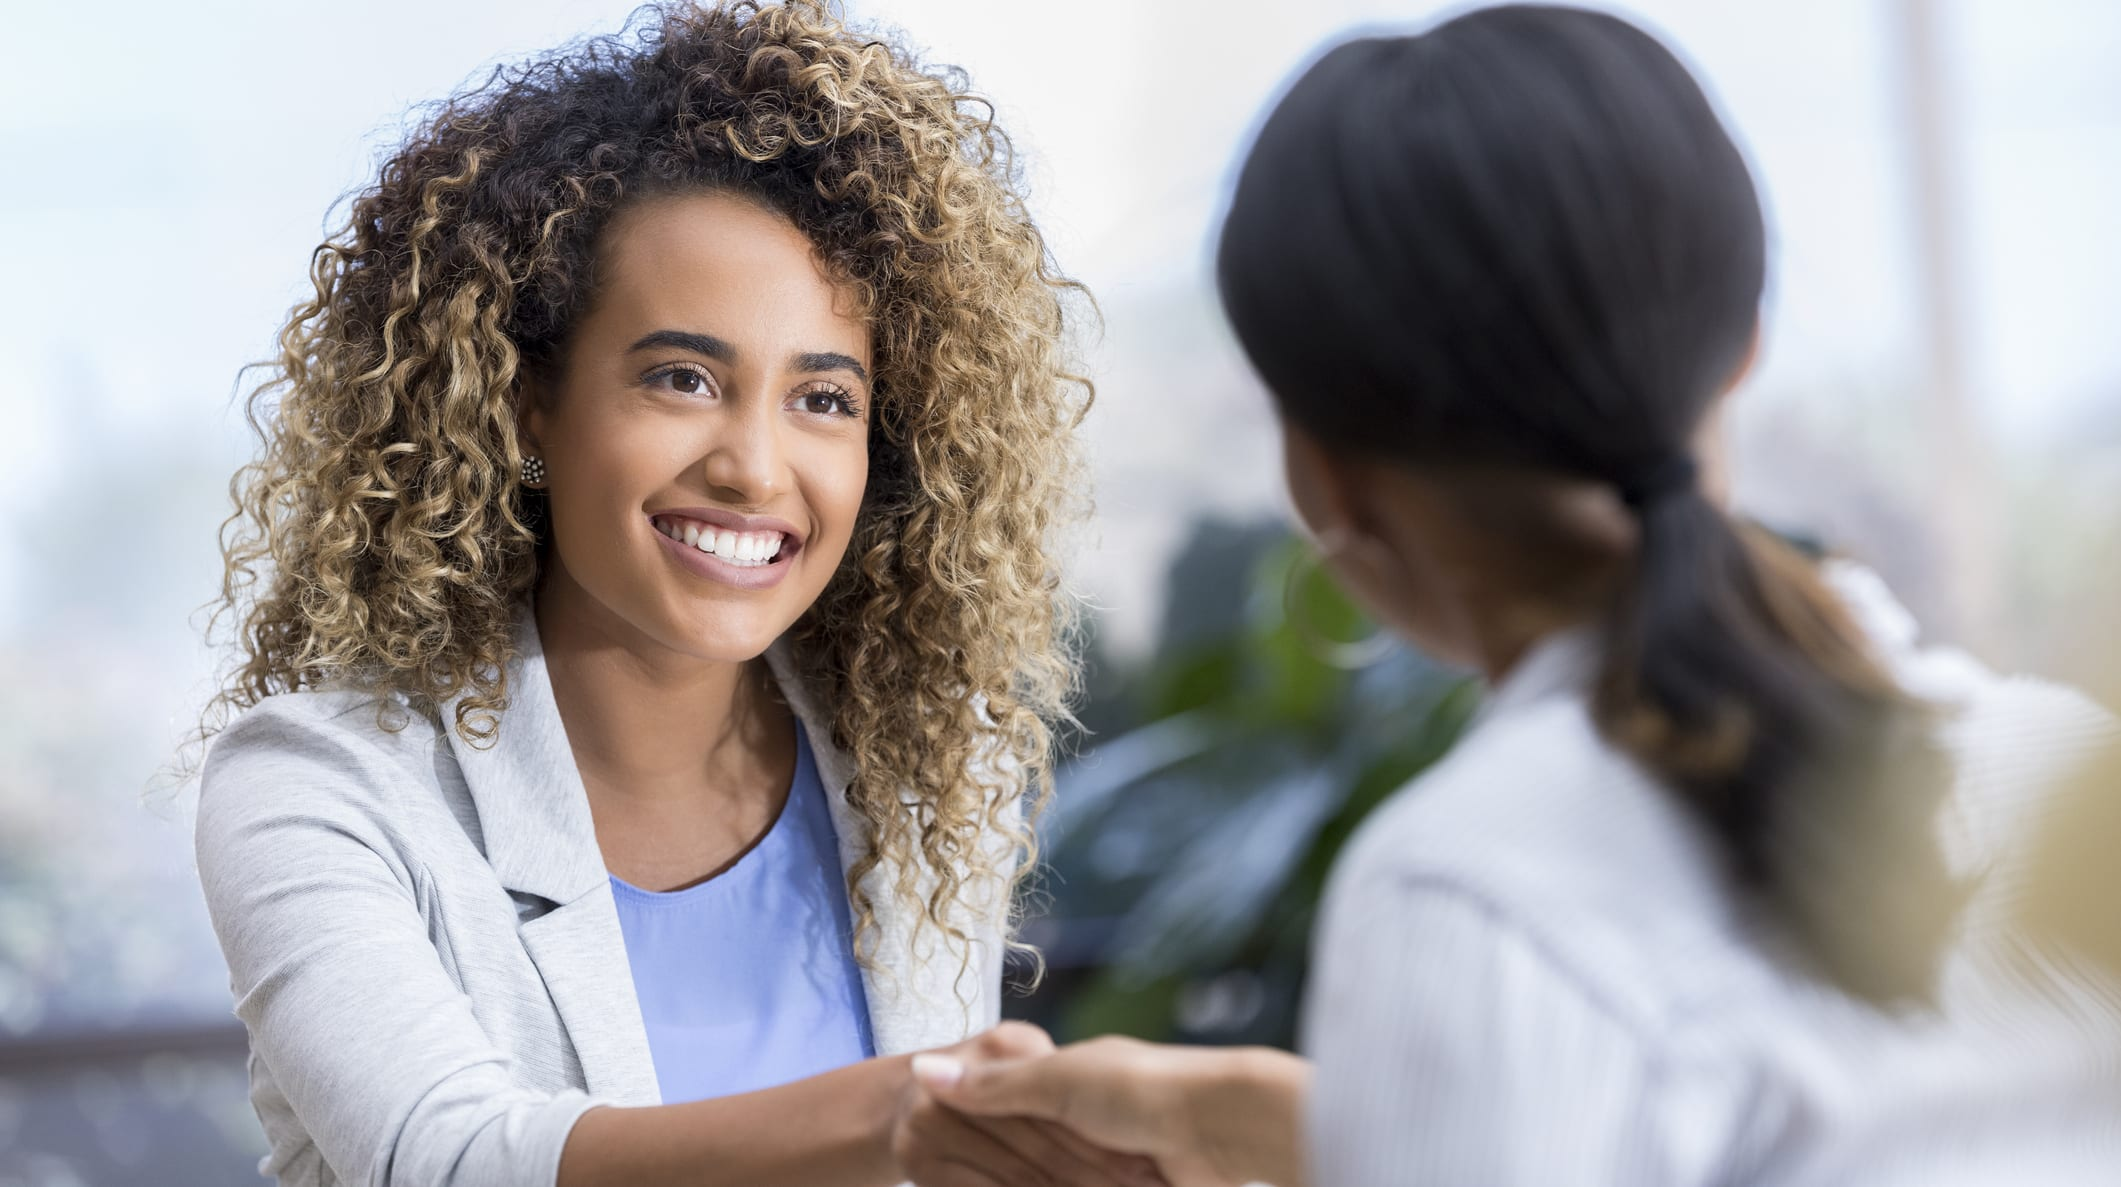 Medical Device Selling: Salesperson shaking hands with a doctor